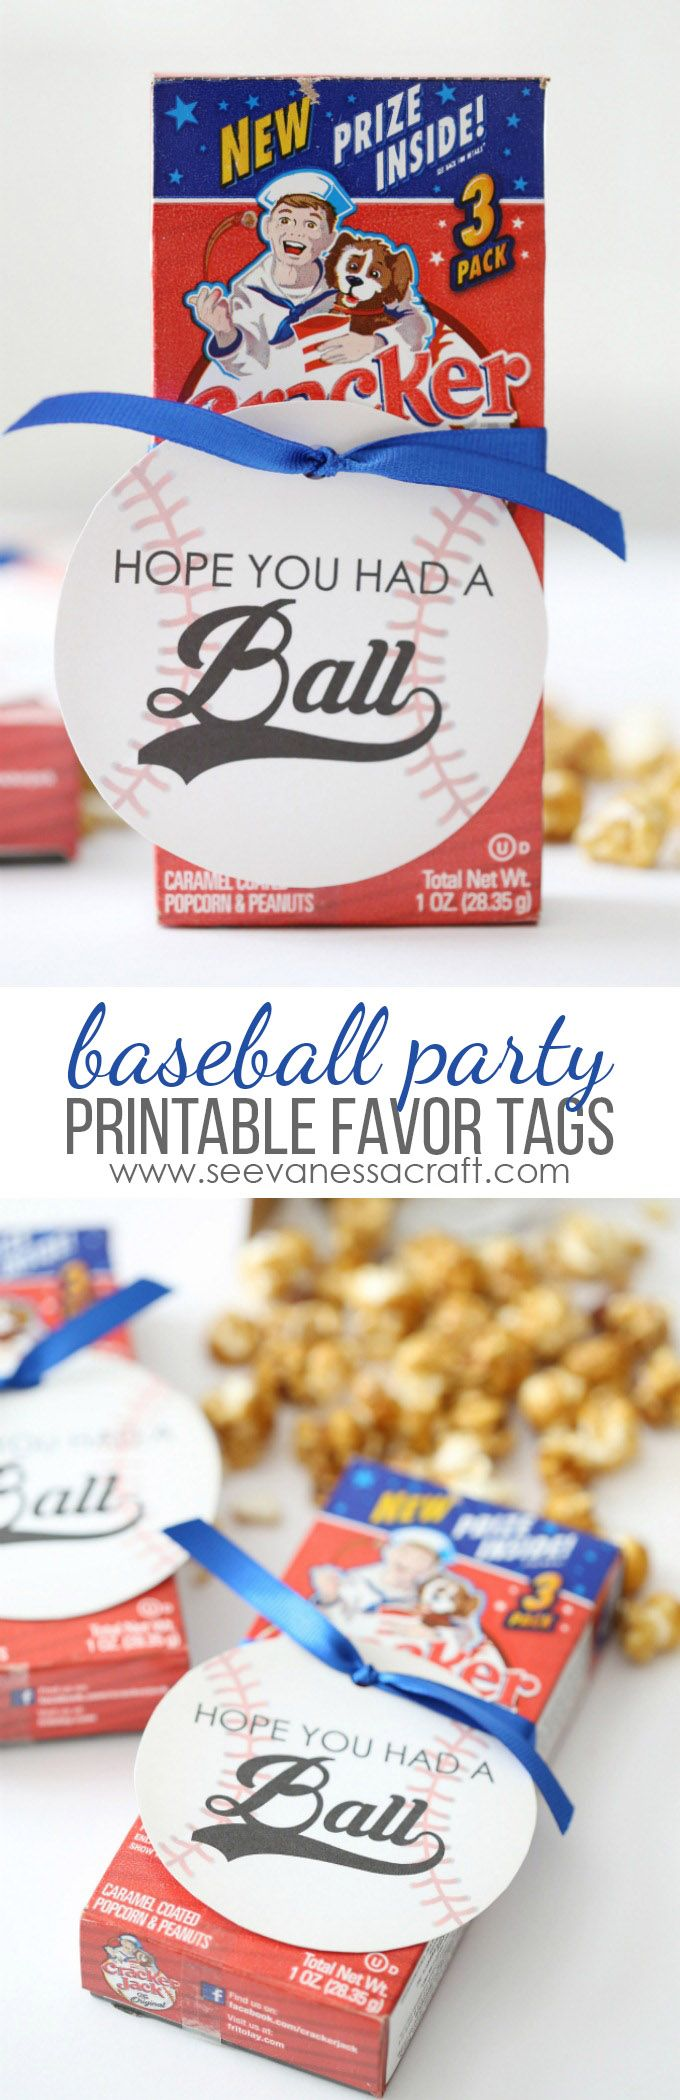 best 25 baseball party games ideas on pinterest kids baseball